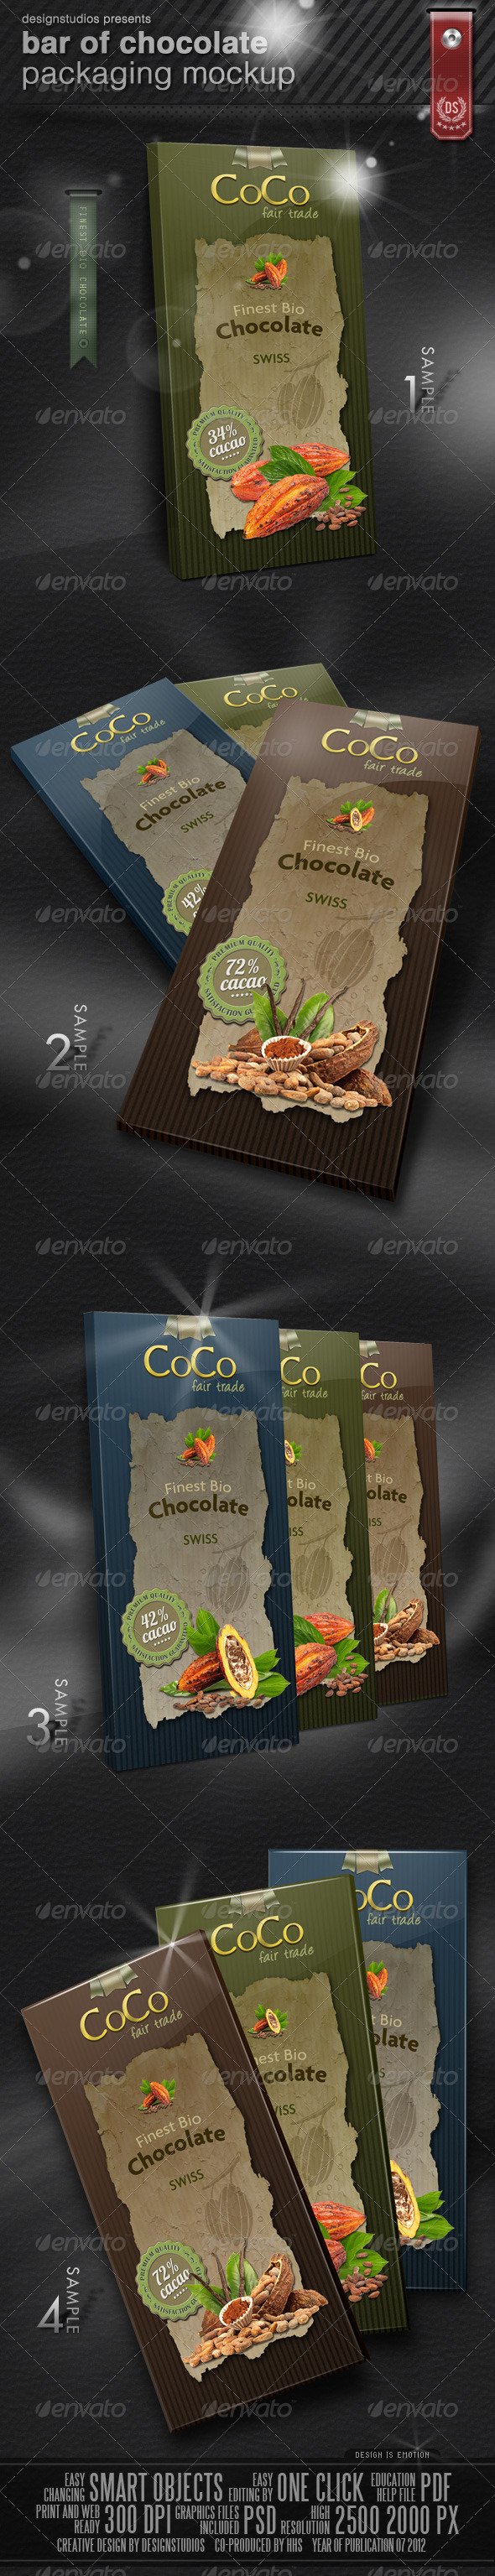 Bar Of Chocolate Packaging Mock-Up - Food and Drink Packaging